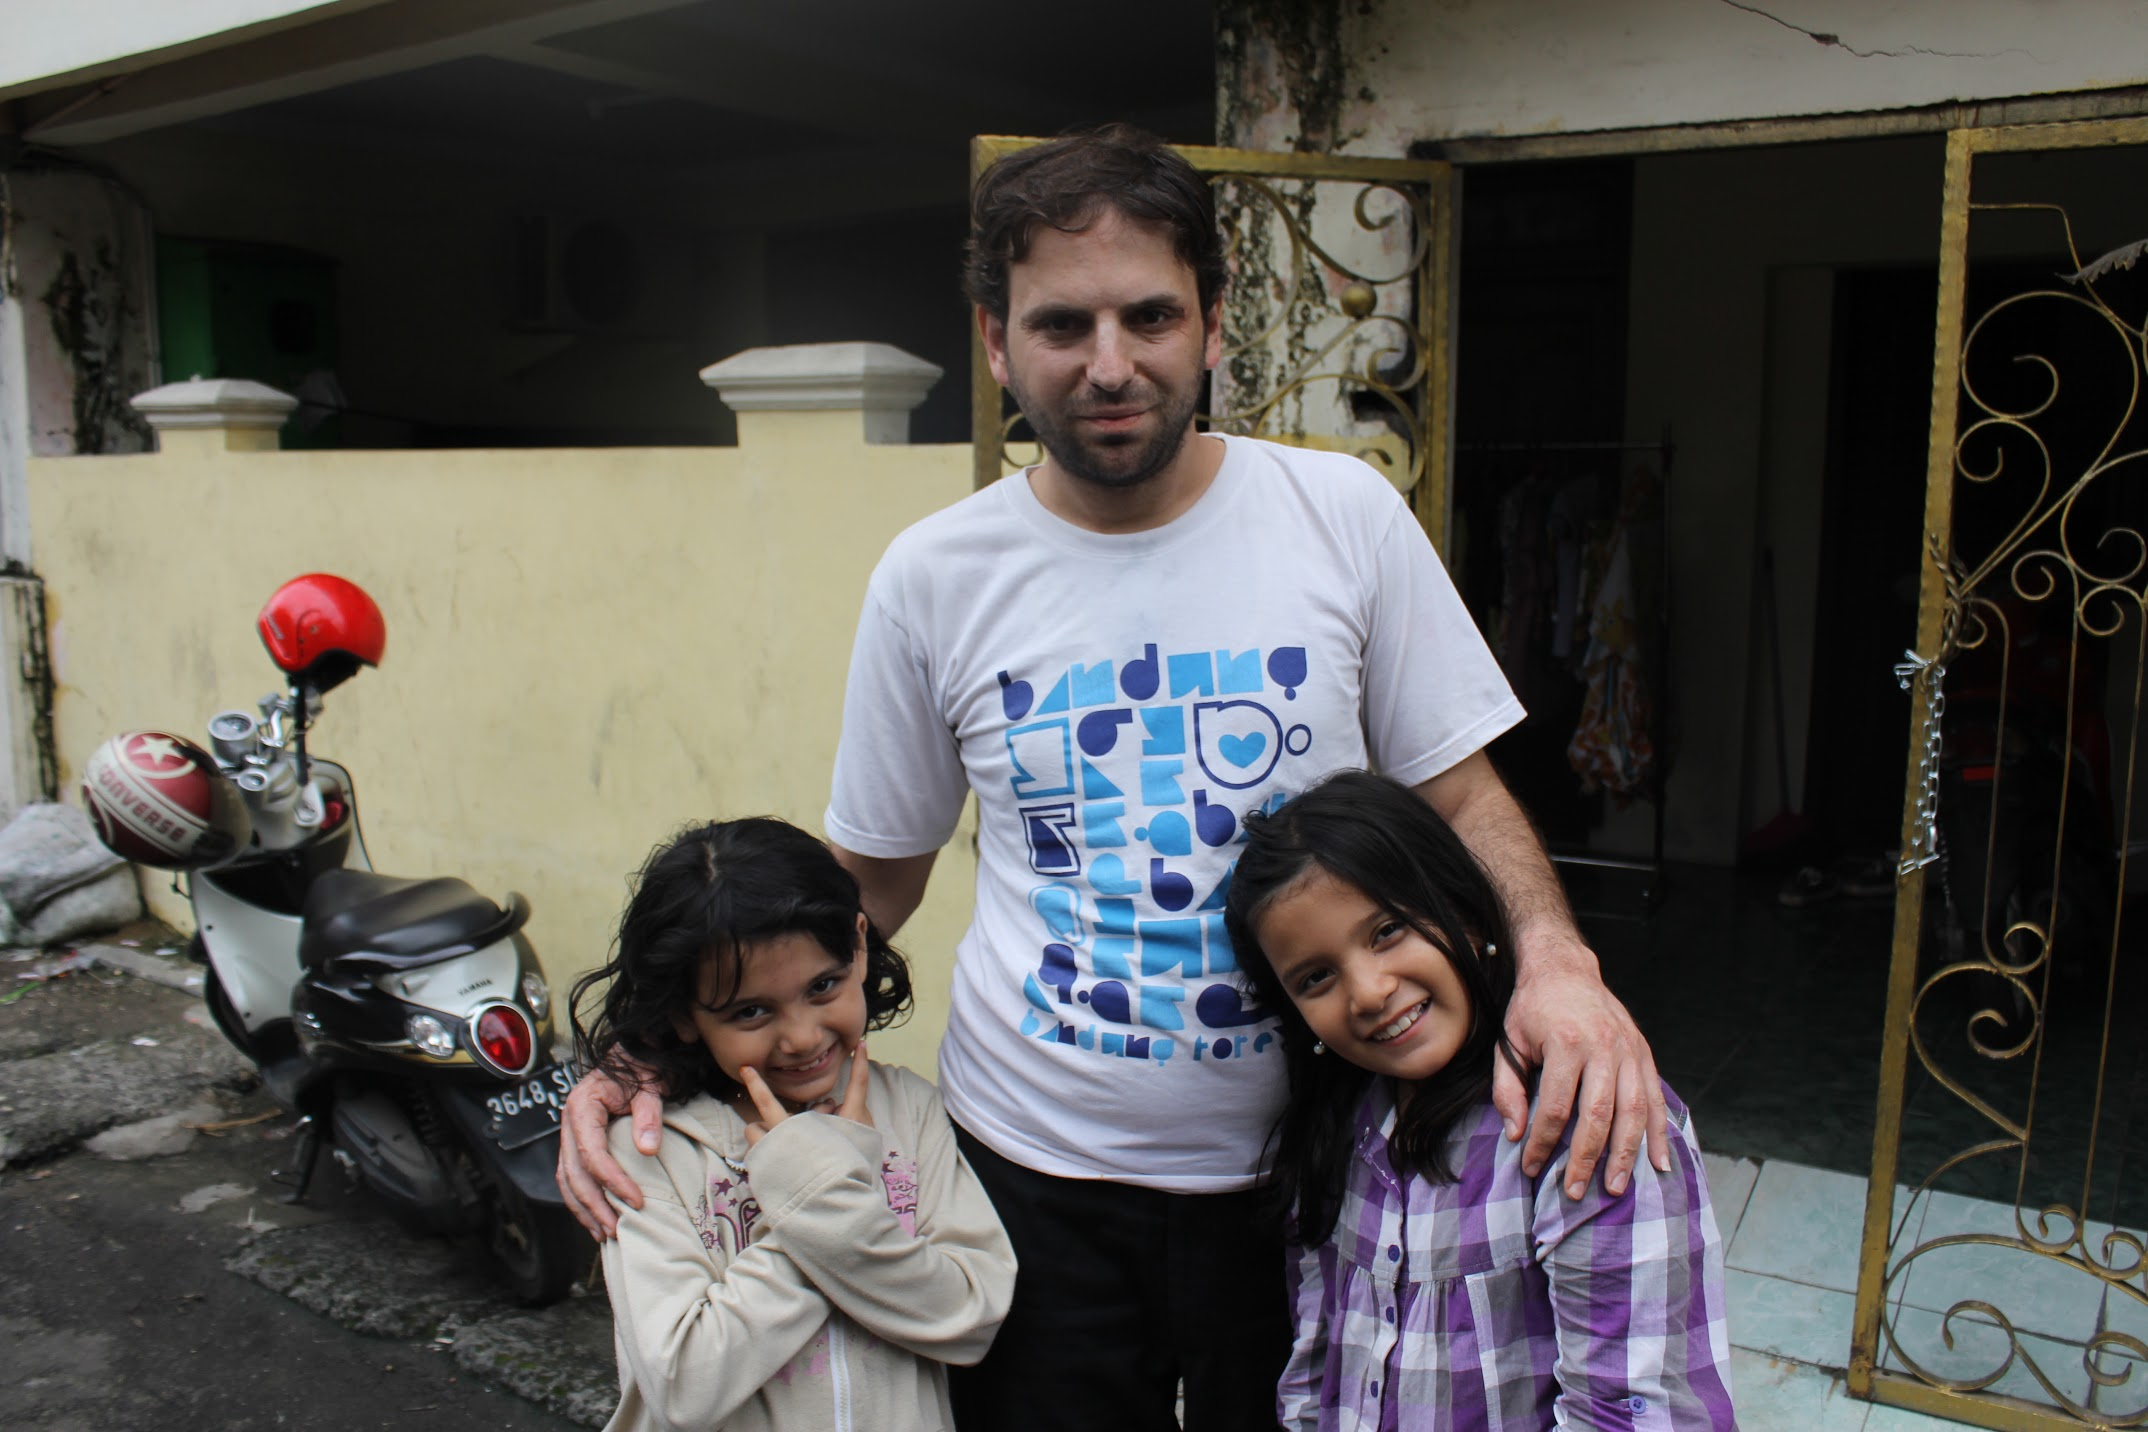 FATHER'S CONCERN. Ahmed says his priority are his two young daughters and giving them a better life. Photo by Han Nguyen/Rappler